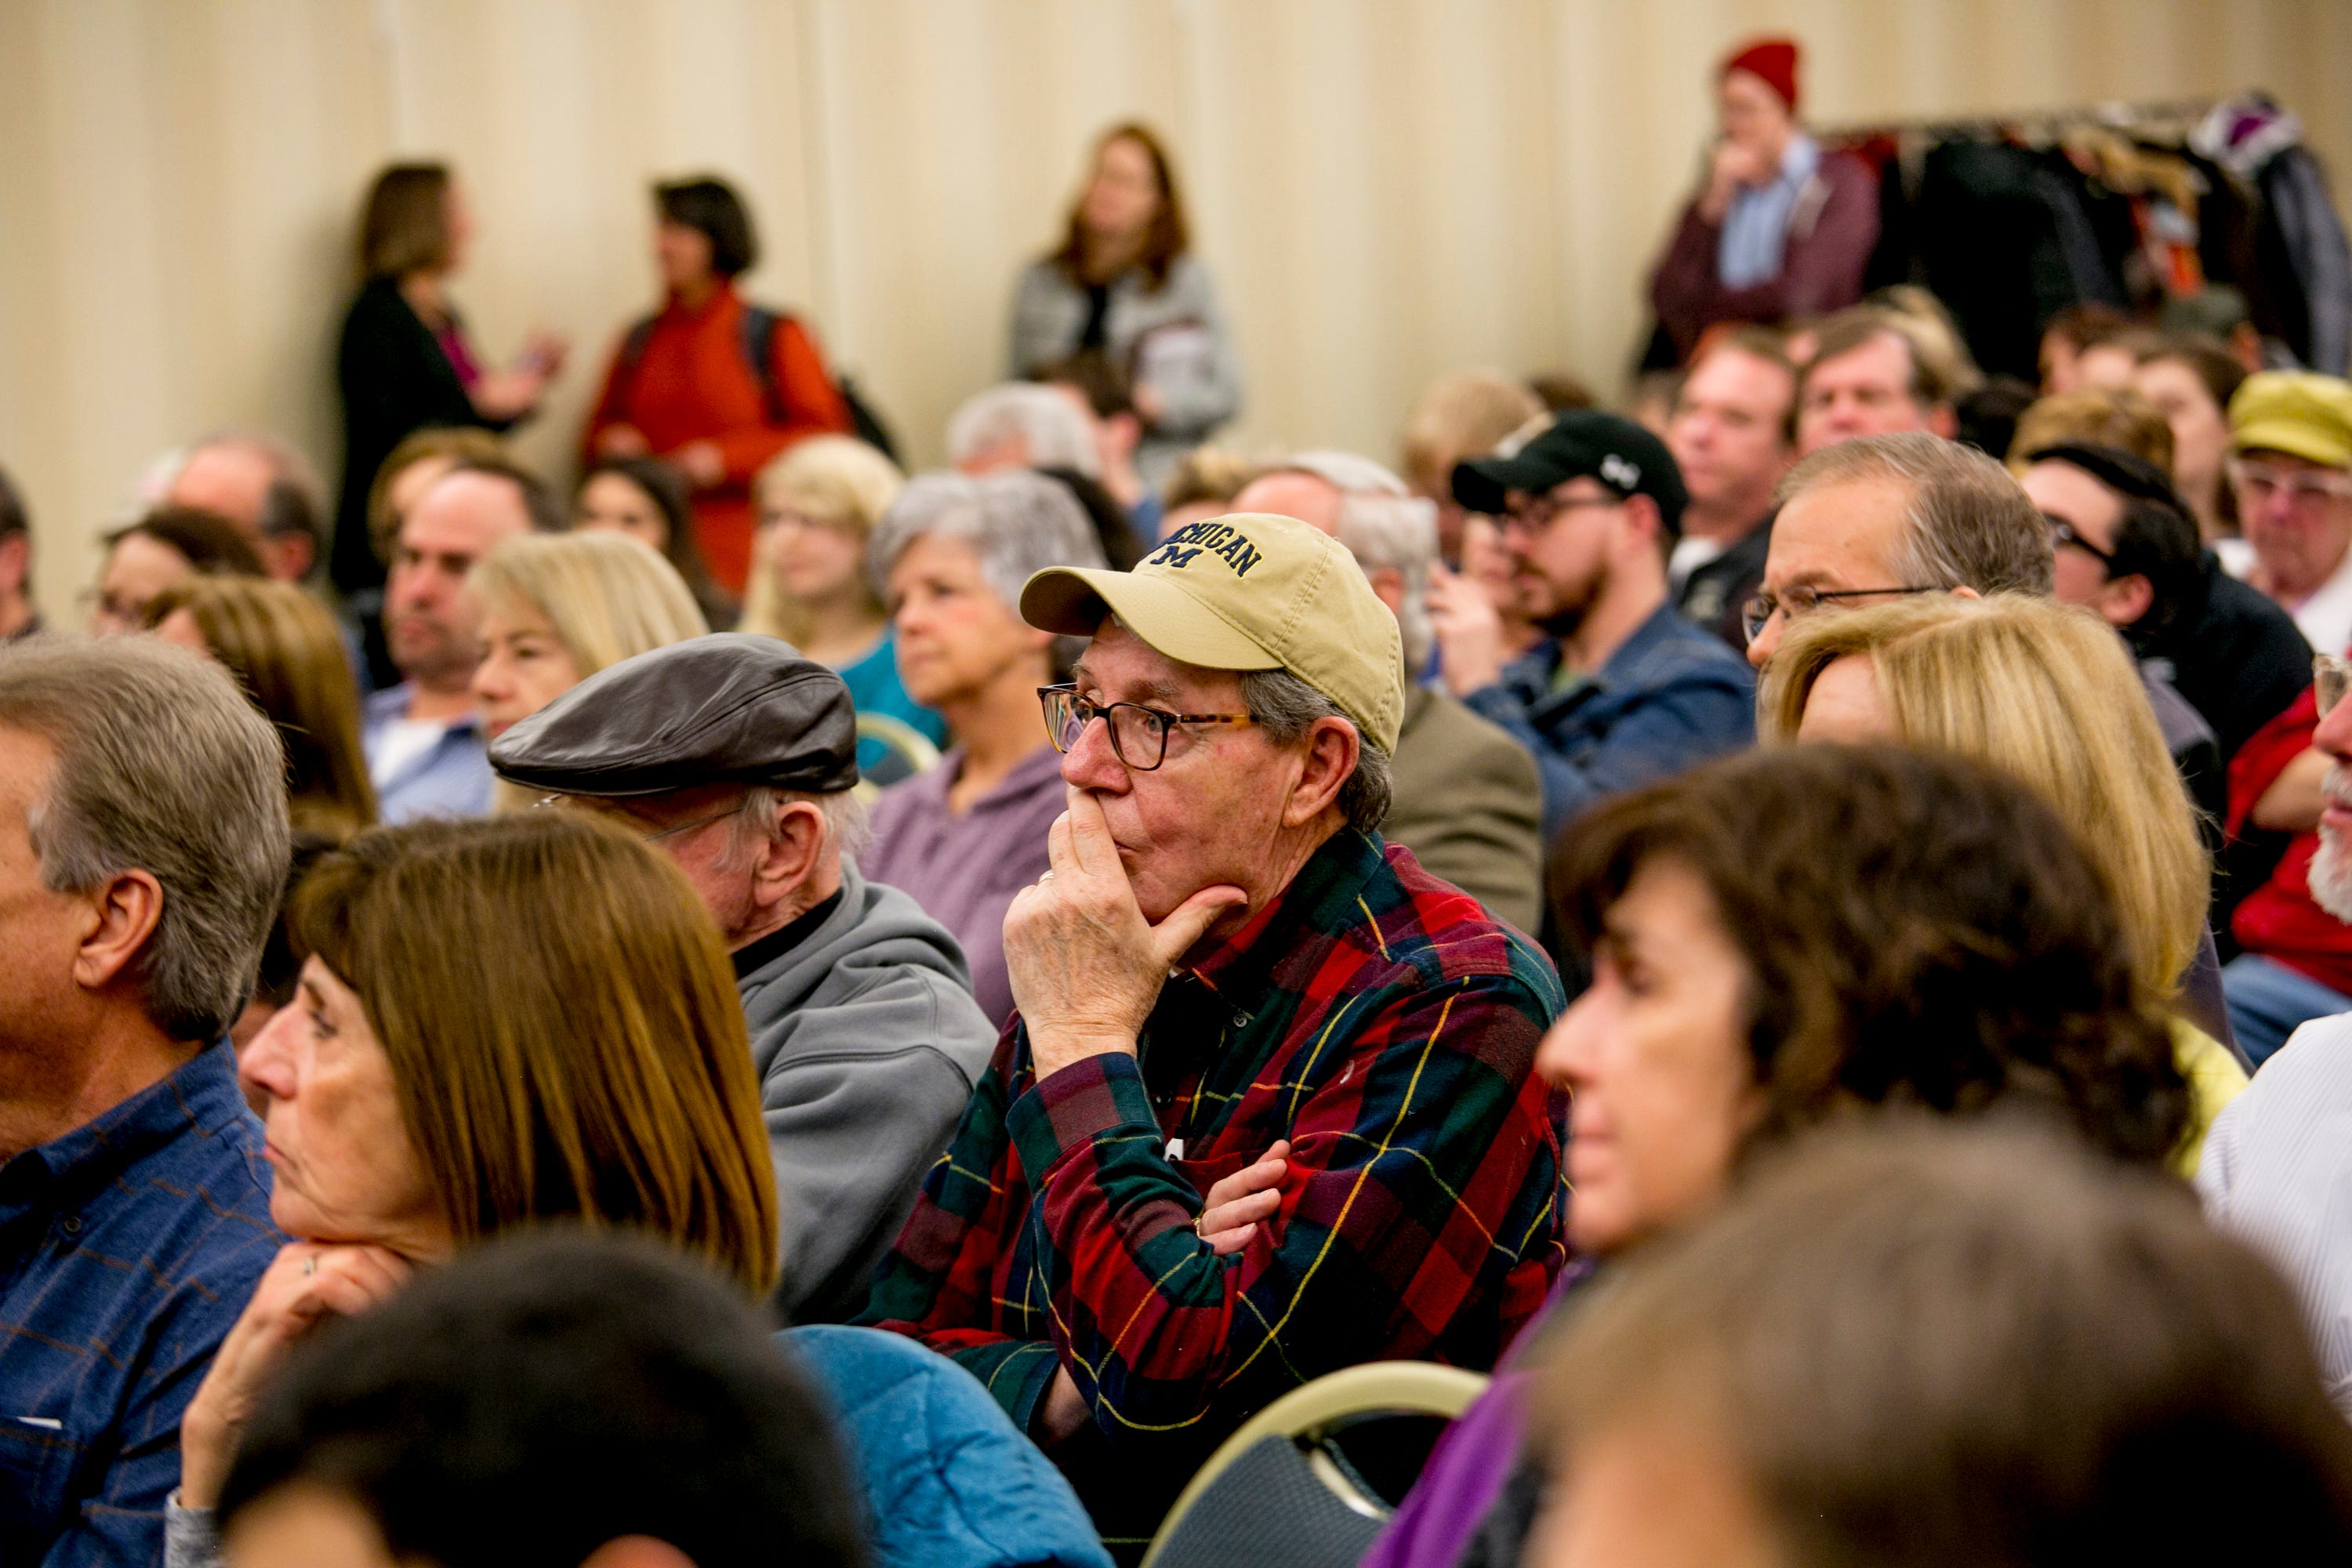 People attend a town hall event held by Congresswoman Elissa Slotkin at Oakland University, in Rochester, MI on March 21, 2019.